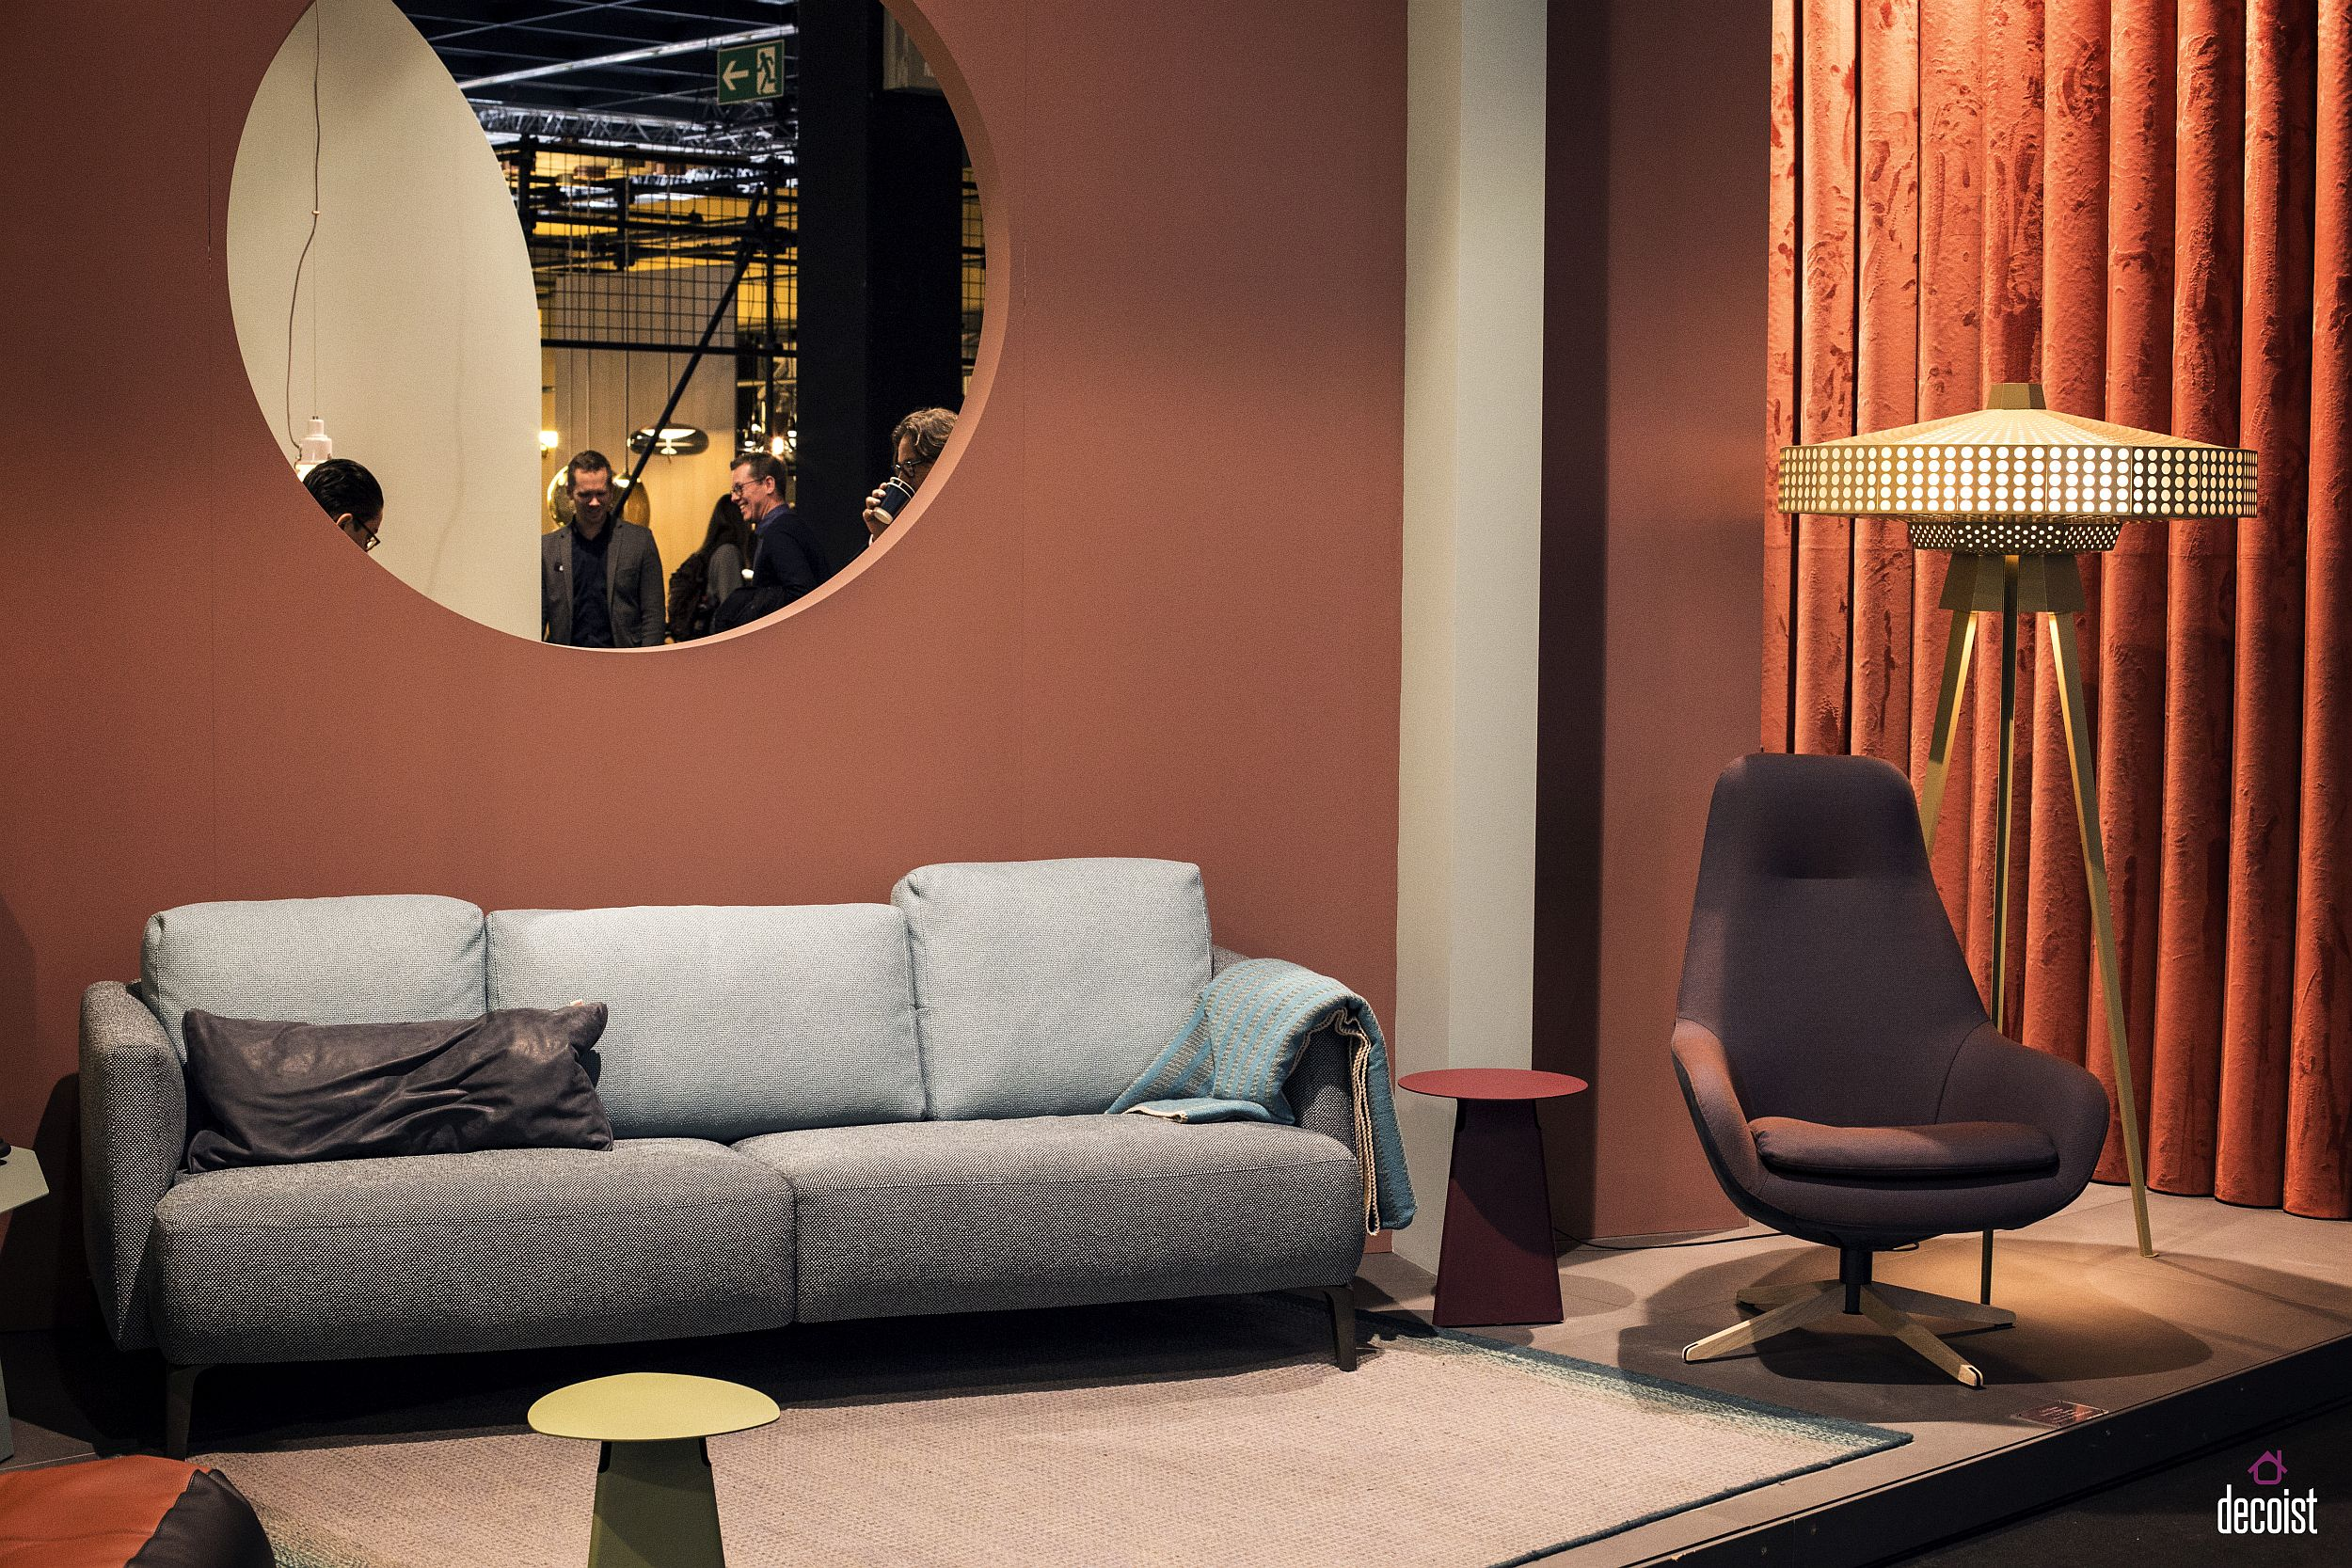 Exclusive floor lamp from pode showcases Dutch design at its timeless best